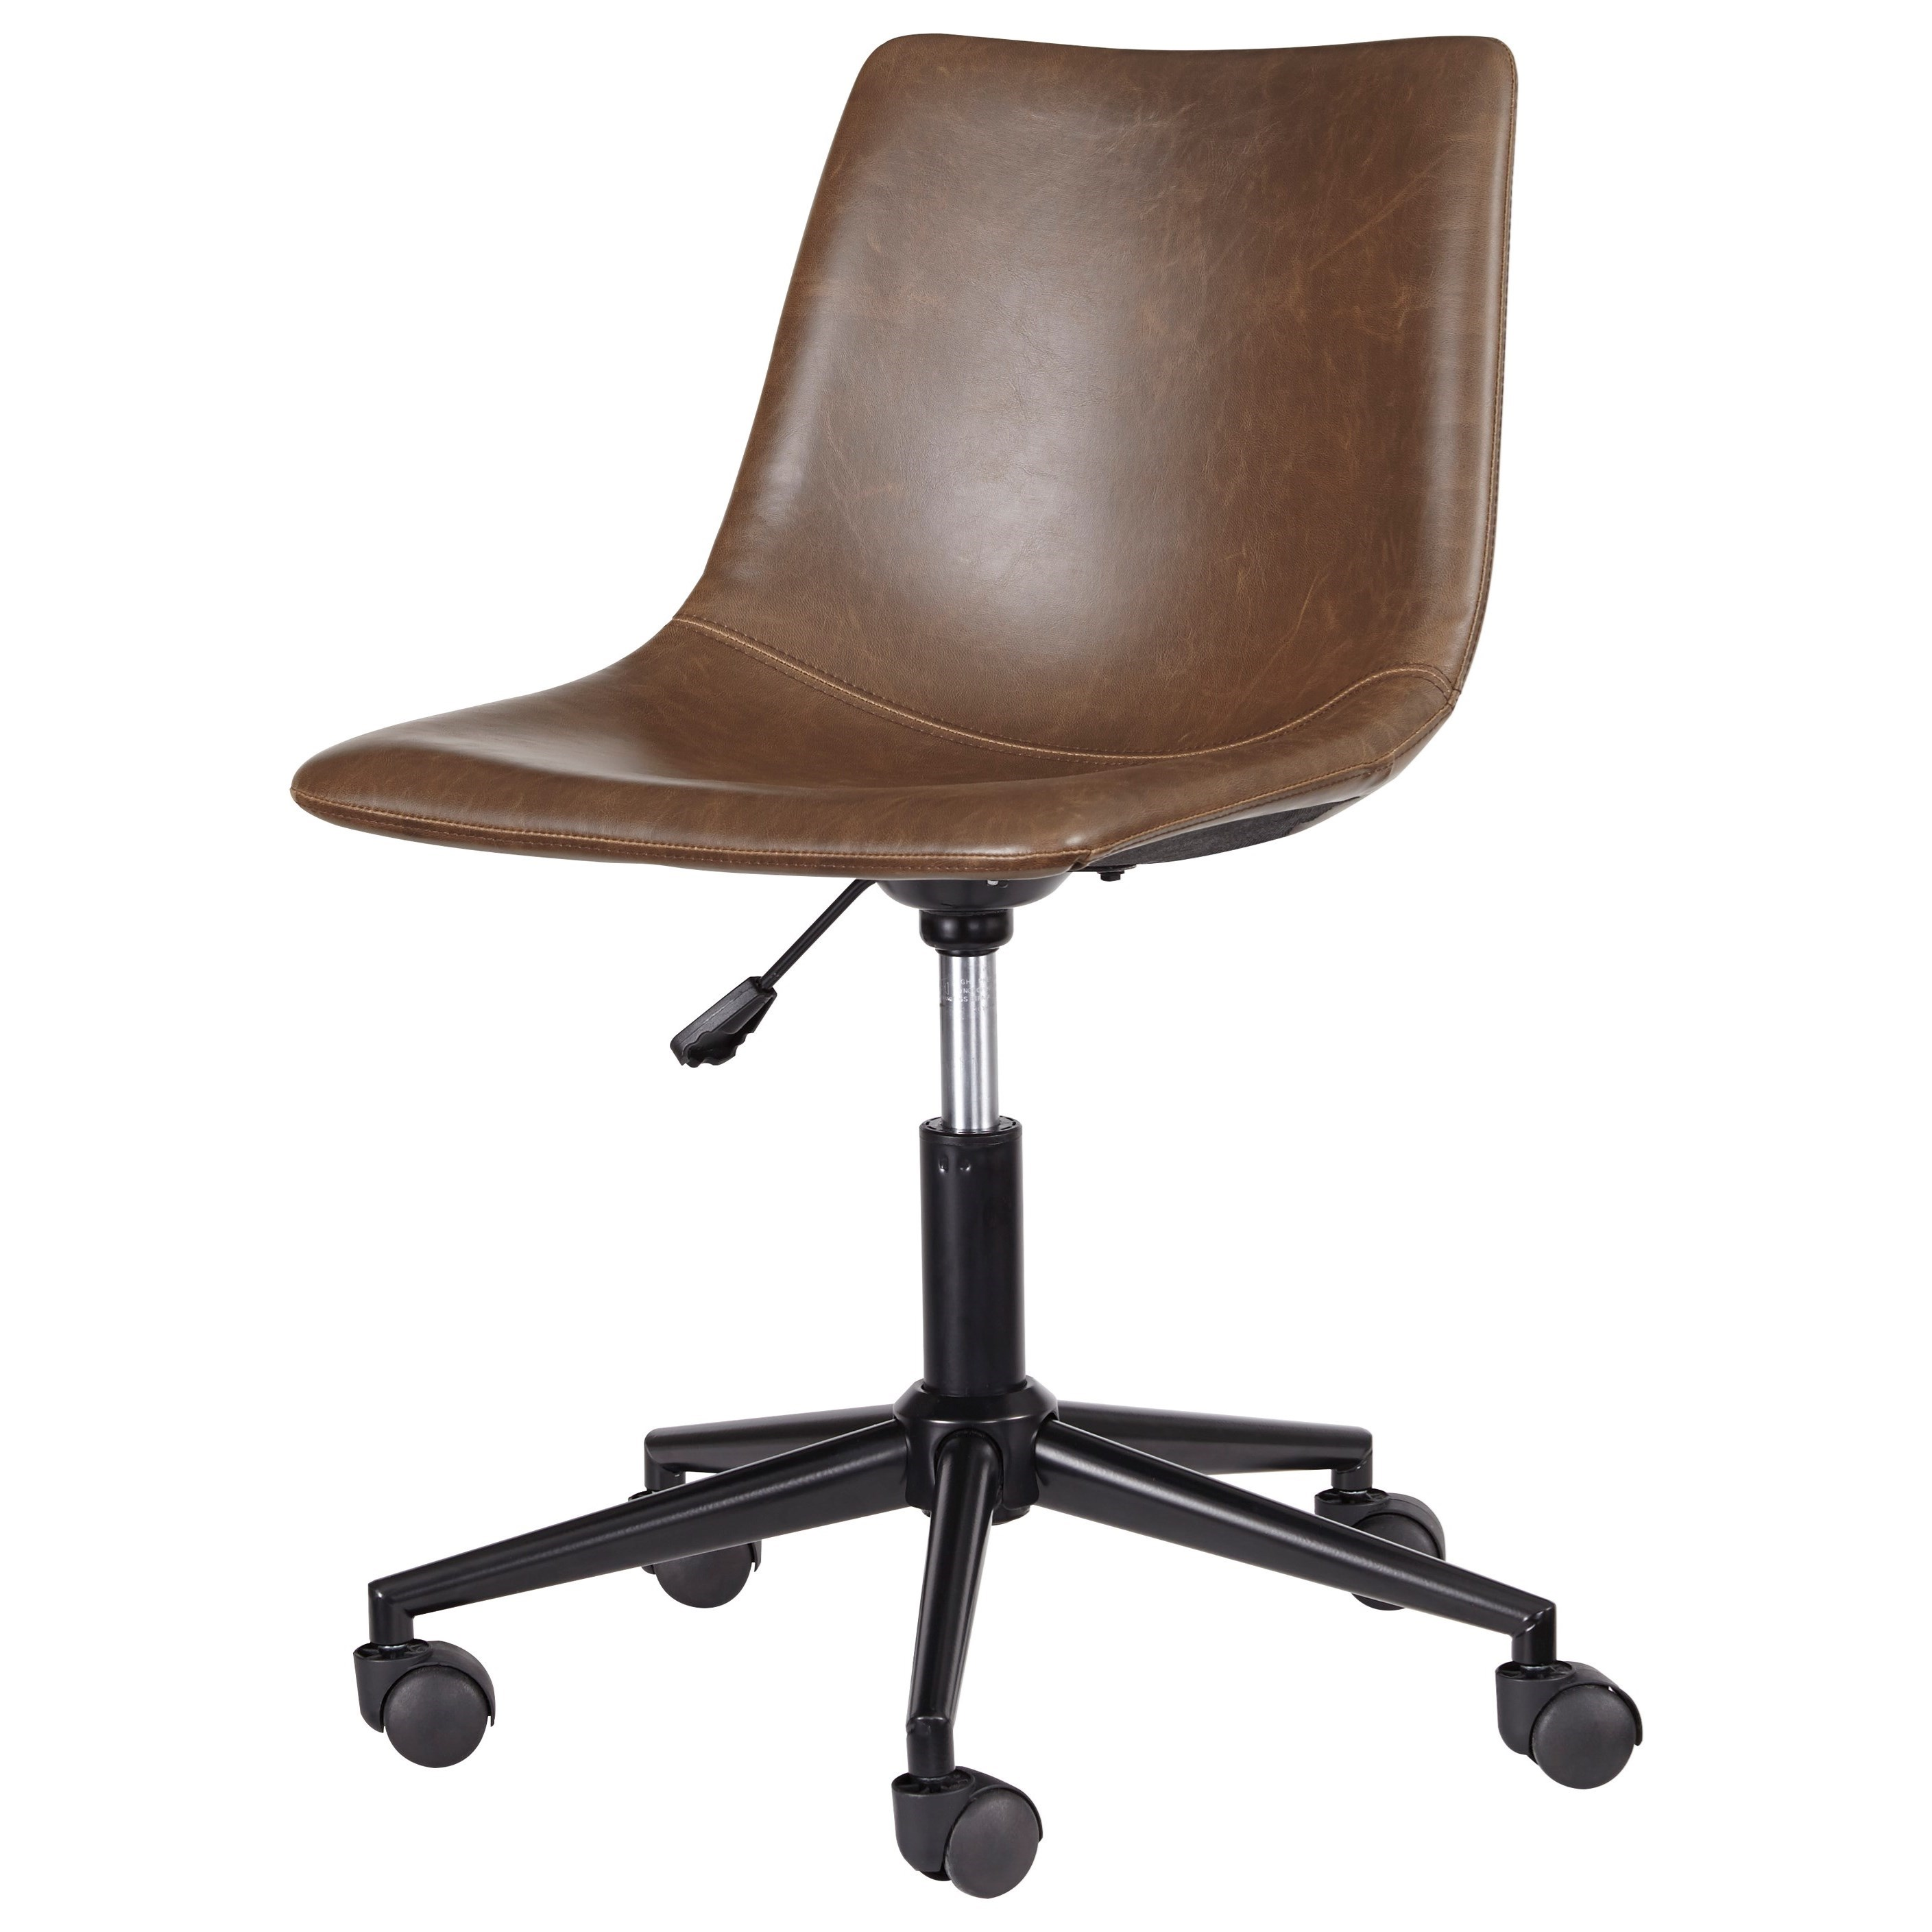 Home Office Swivel Desk Chair in Brown Faux Leather